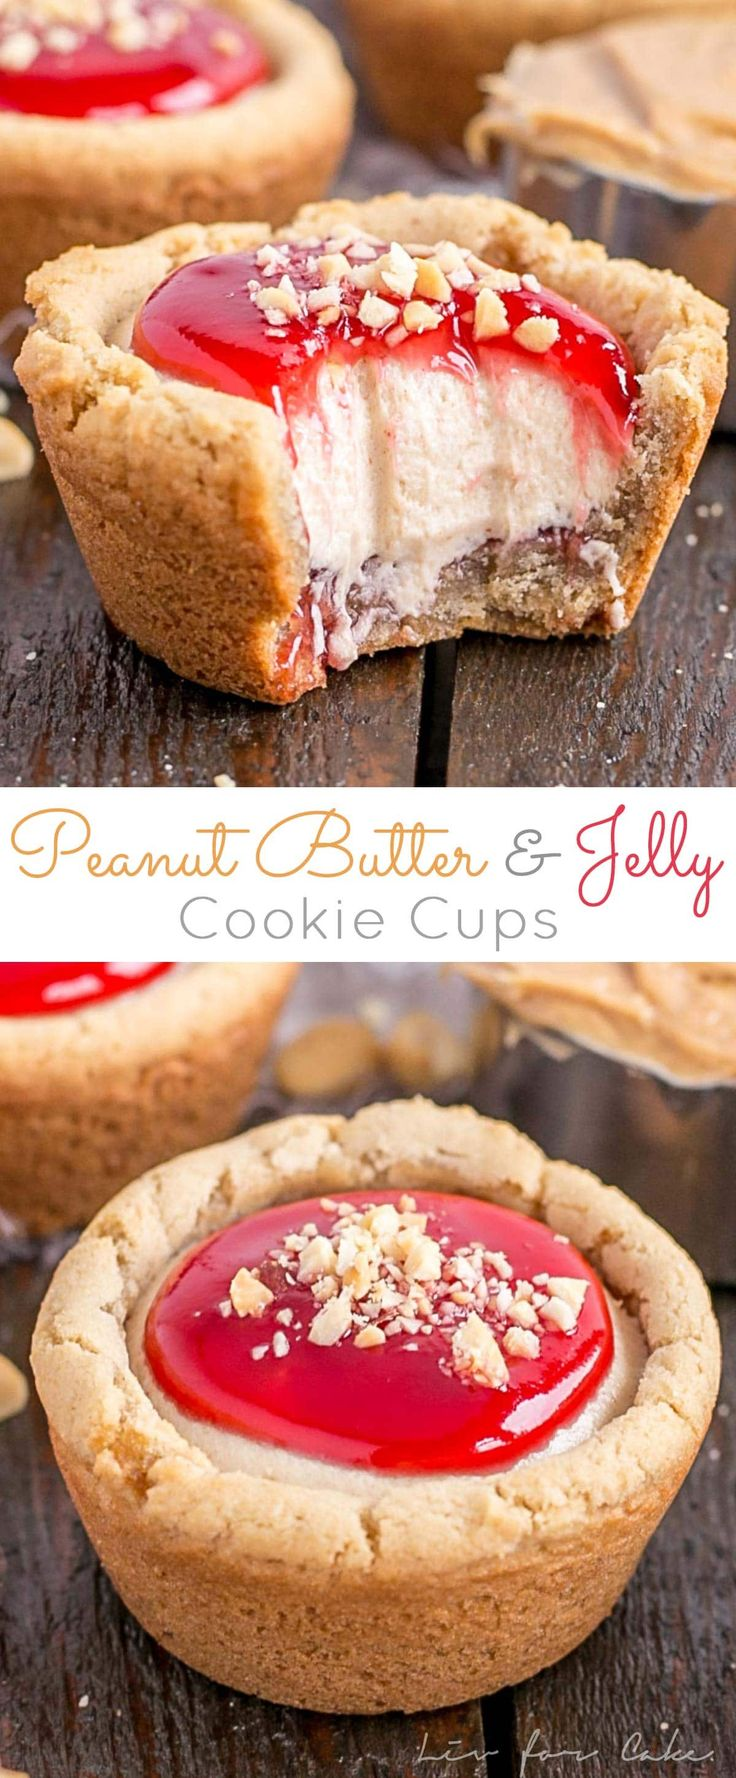 Peanut Butter & Jelly Cookie Cups! Take a lunchbox classic to the next level with these surprisingly easy Peanut Butter & Jelly Cookie Cups! | livforcake.com